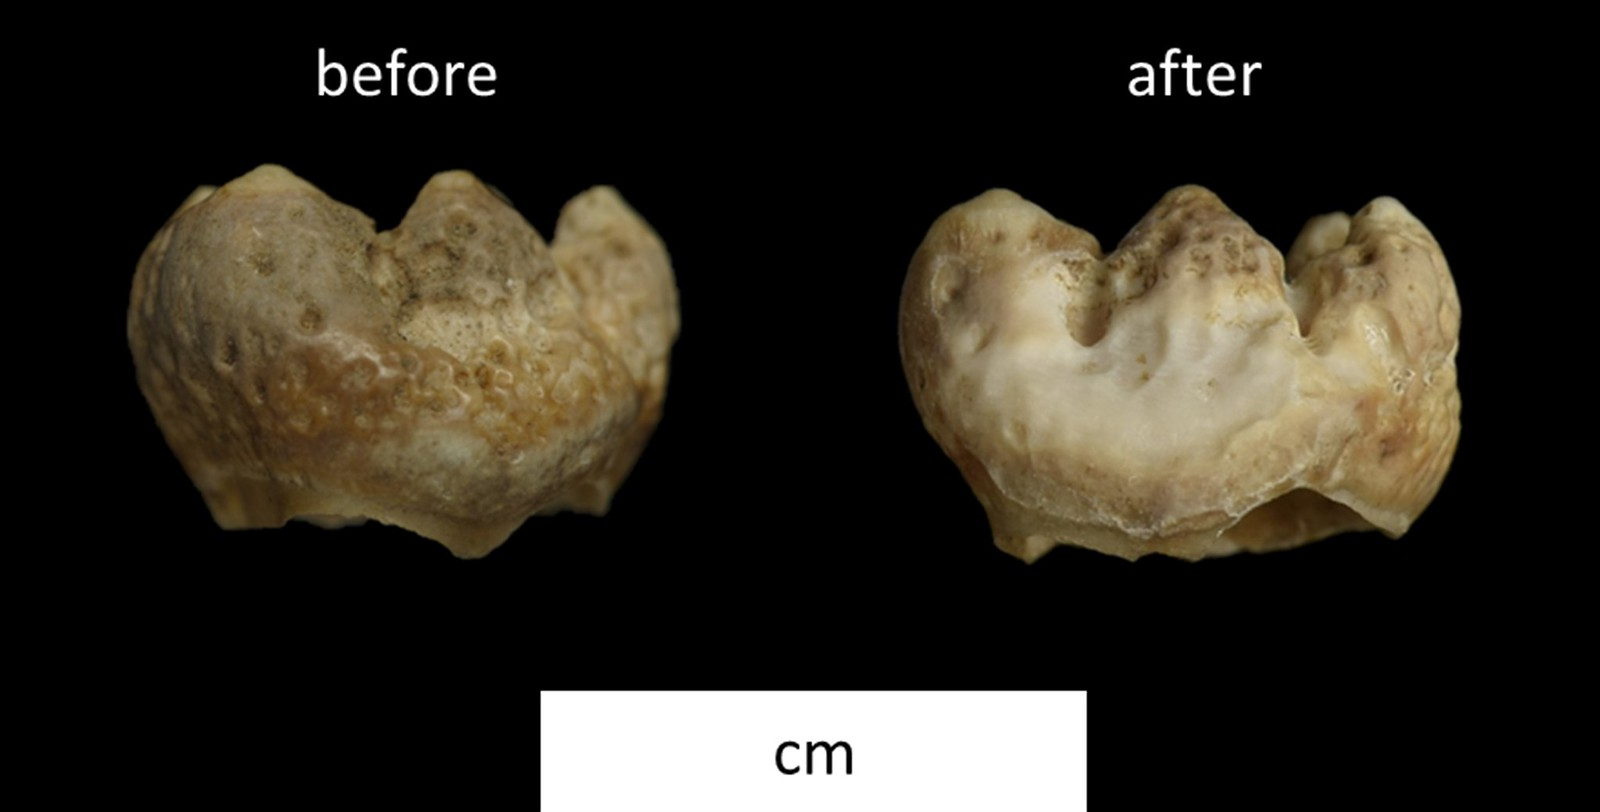 A before (left) and after (right) picture of a tooth that has been sampled. The only difference is a slight acid etch to the surface